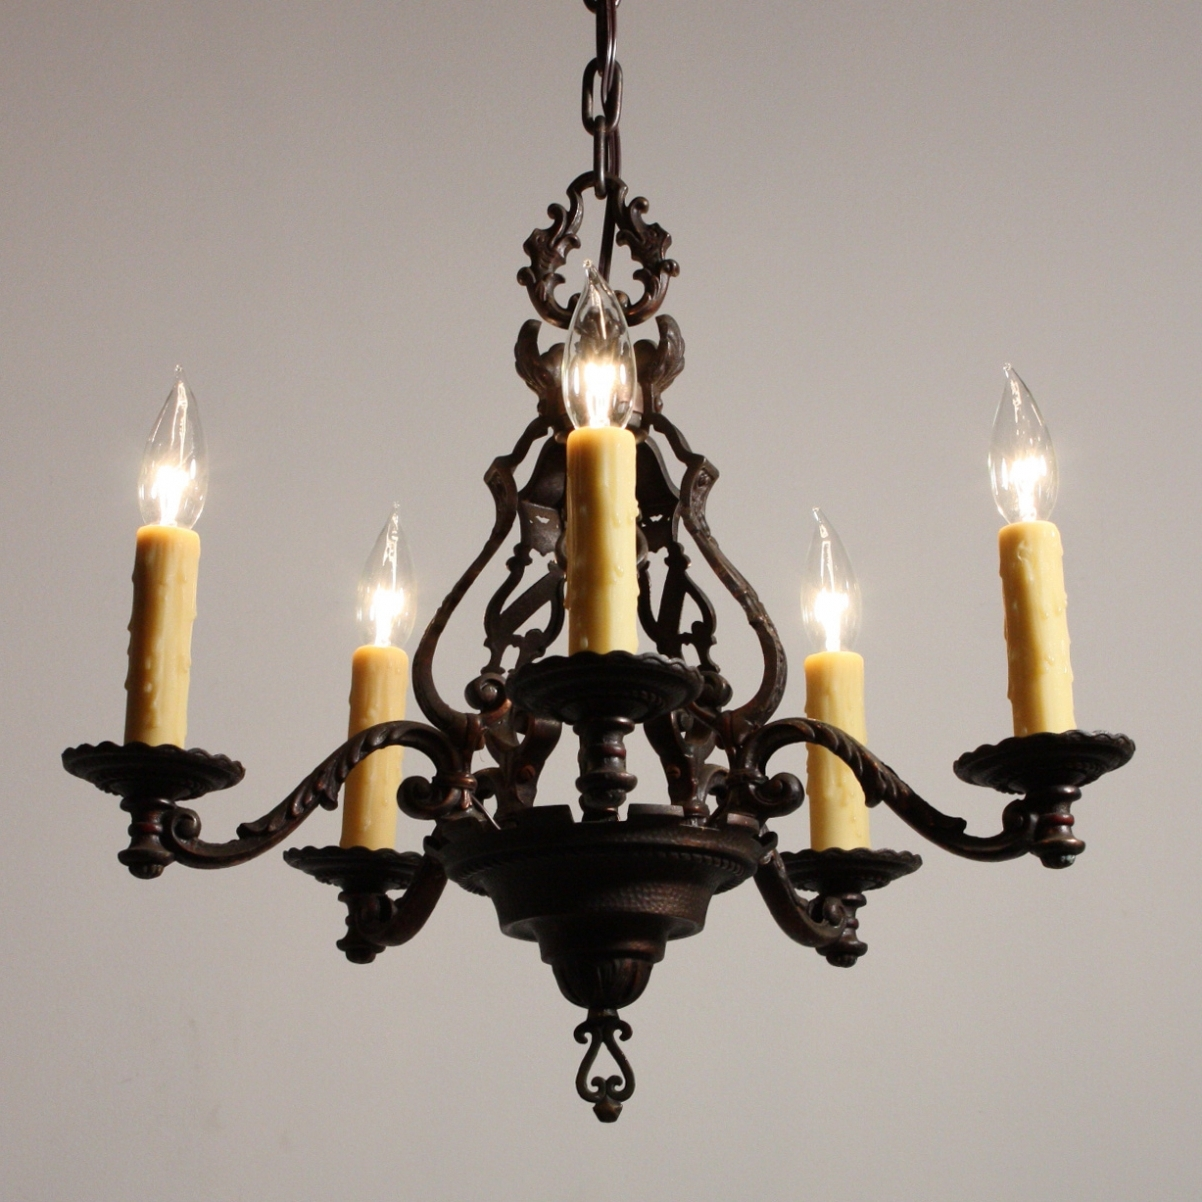 Cast Iron Chandelier With Regard To Current Antique Cast Iron Chandelier – Chandelier Designs (View 9 of 20)